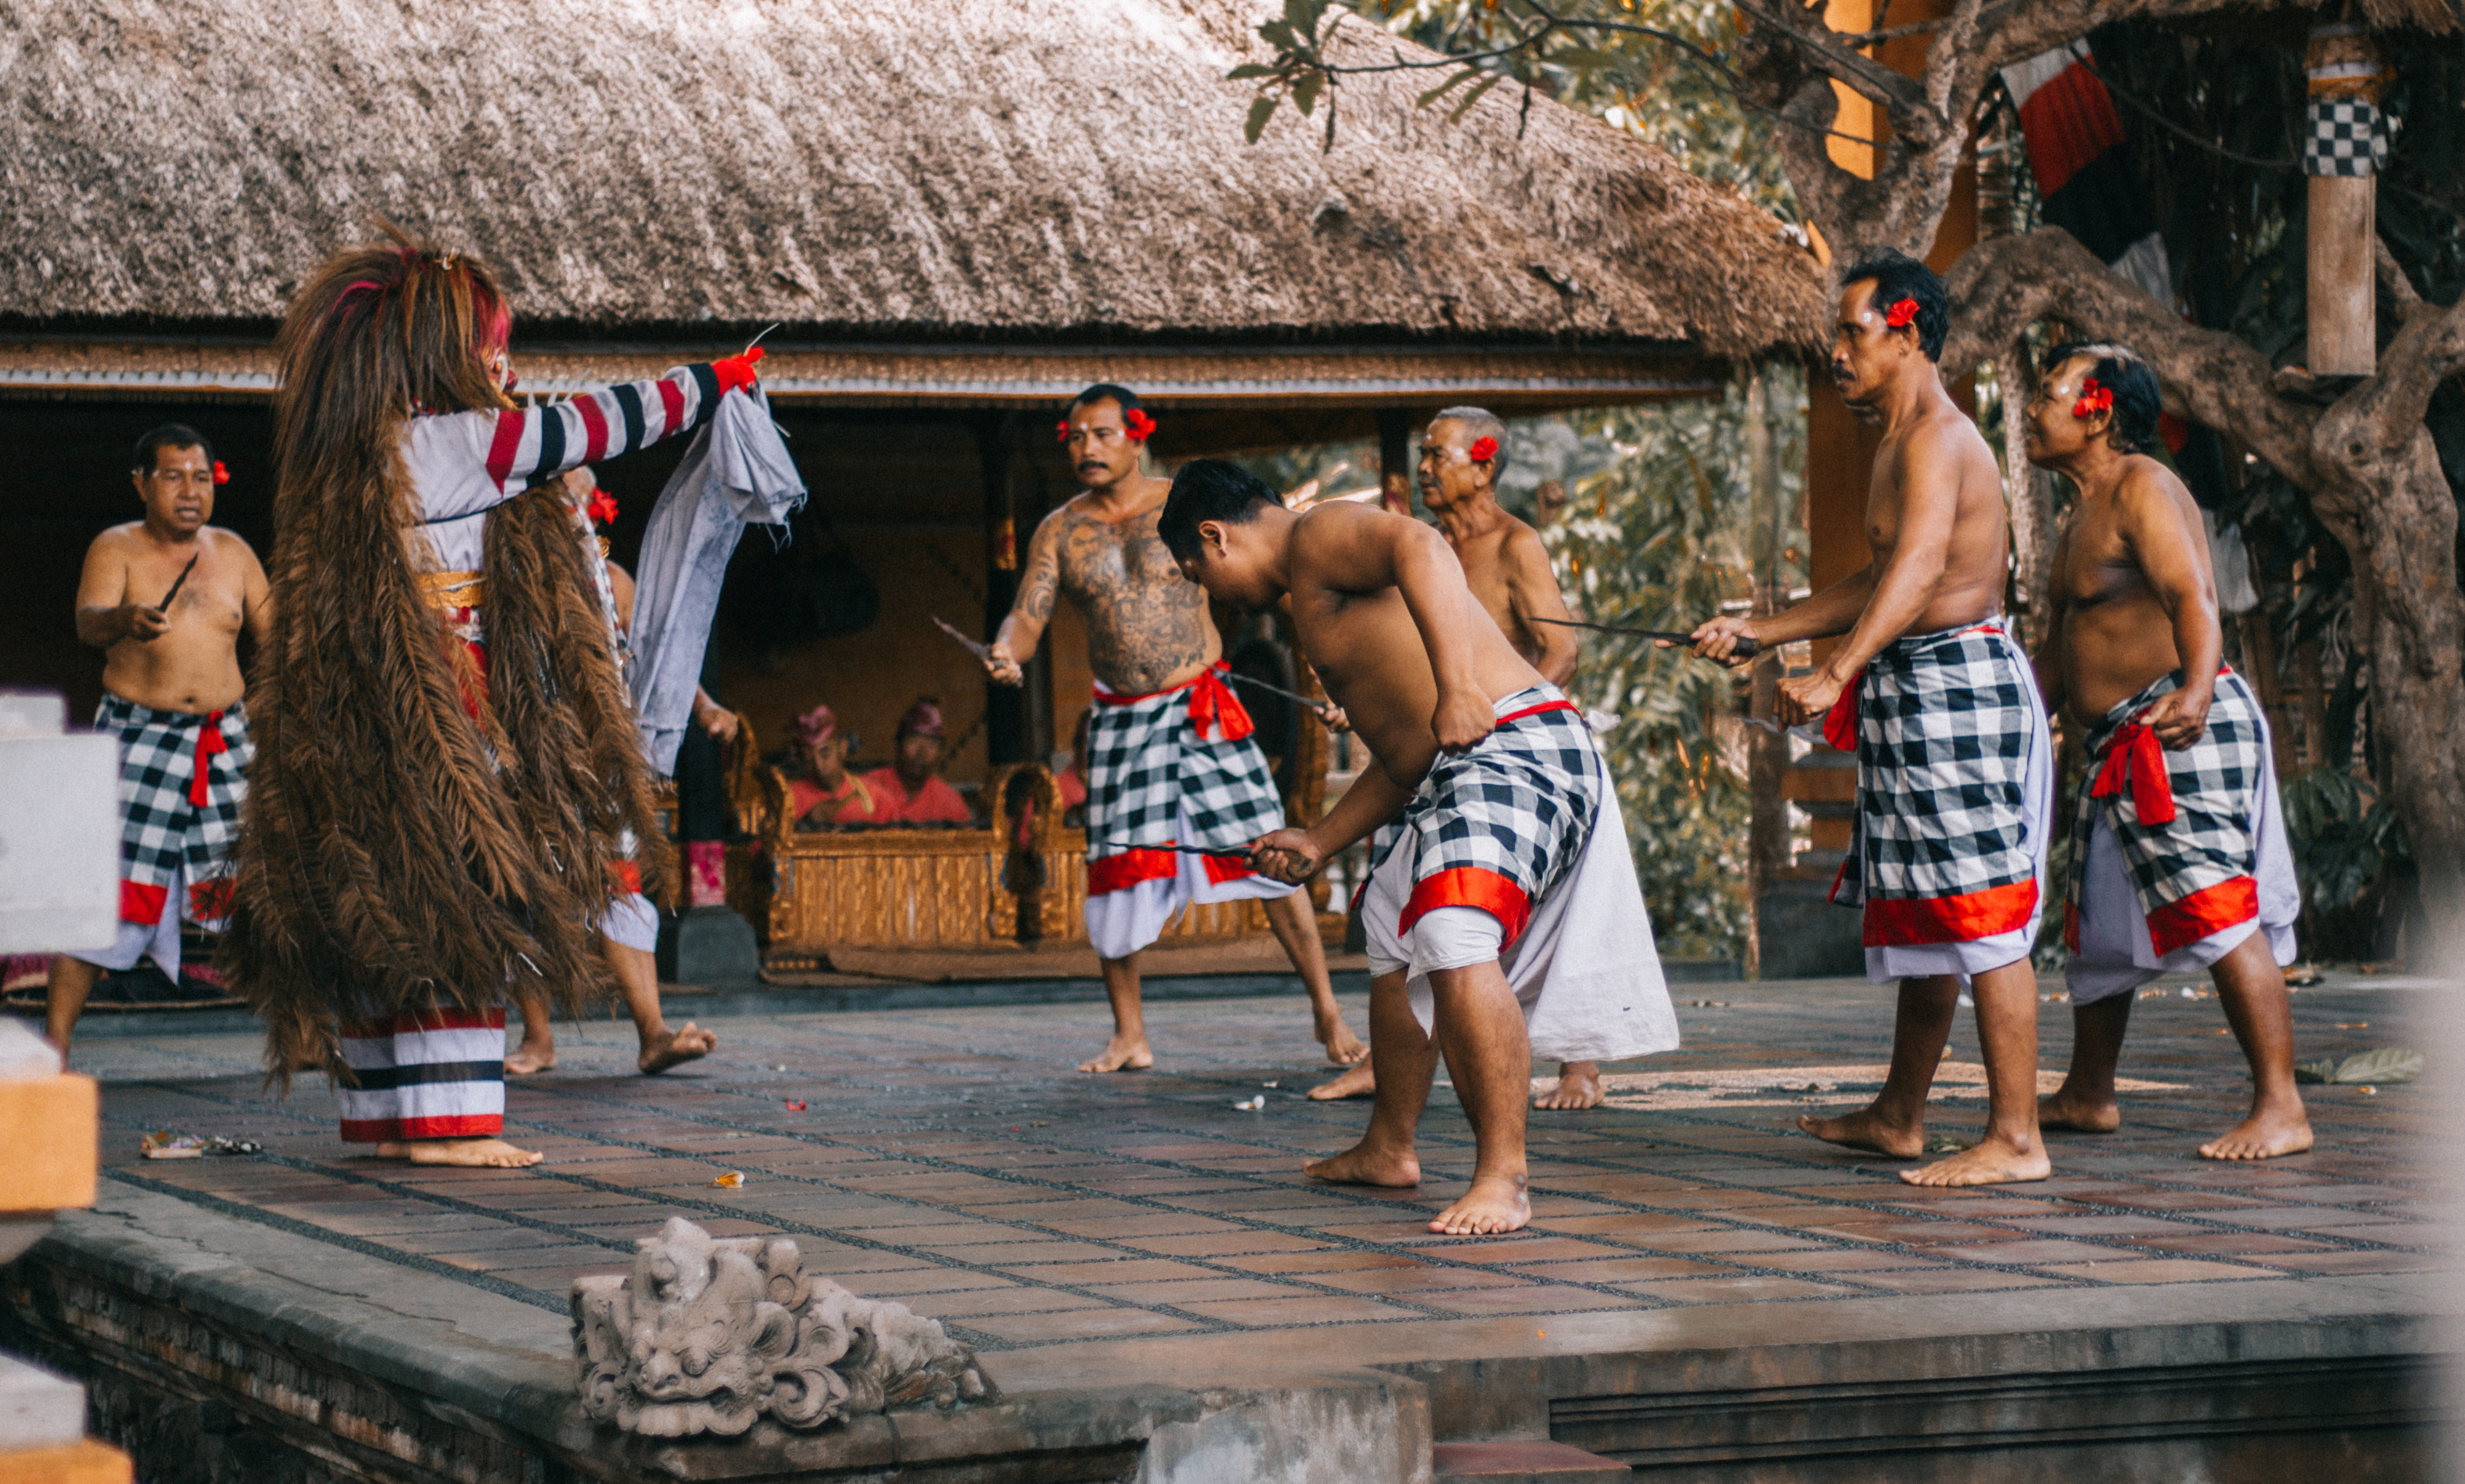 Men Wearing White and Black Checked Sarong Standing on Stage, Celebration, Men, Trees, Performers, HQ Photo